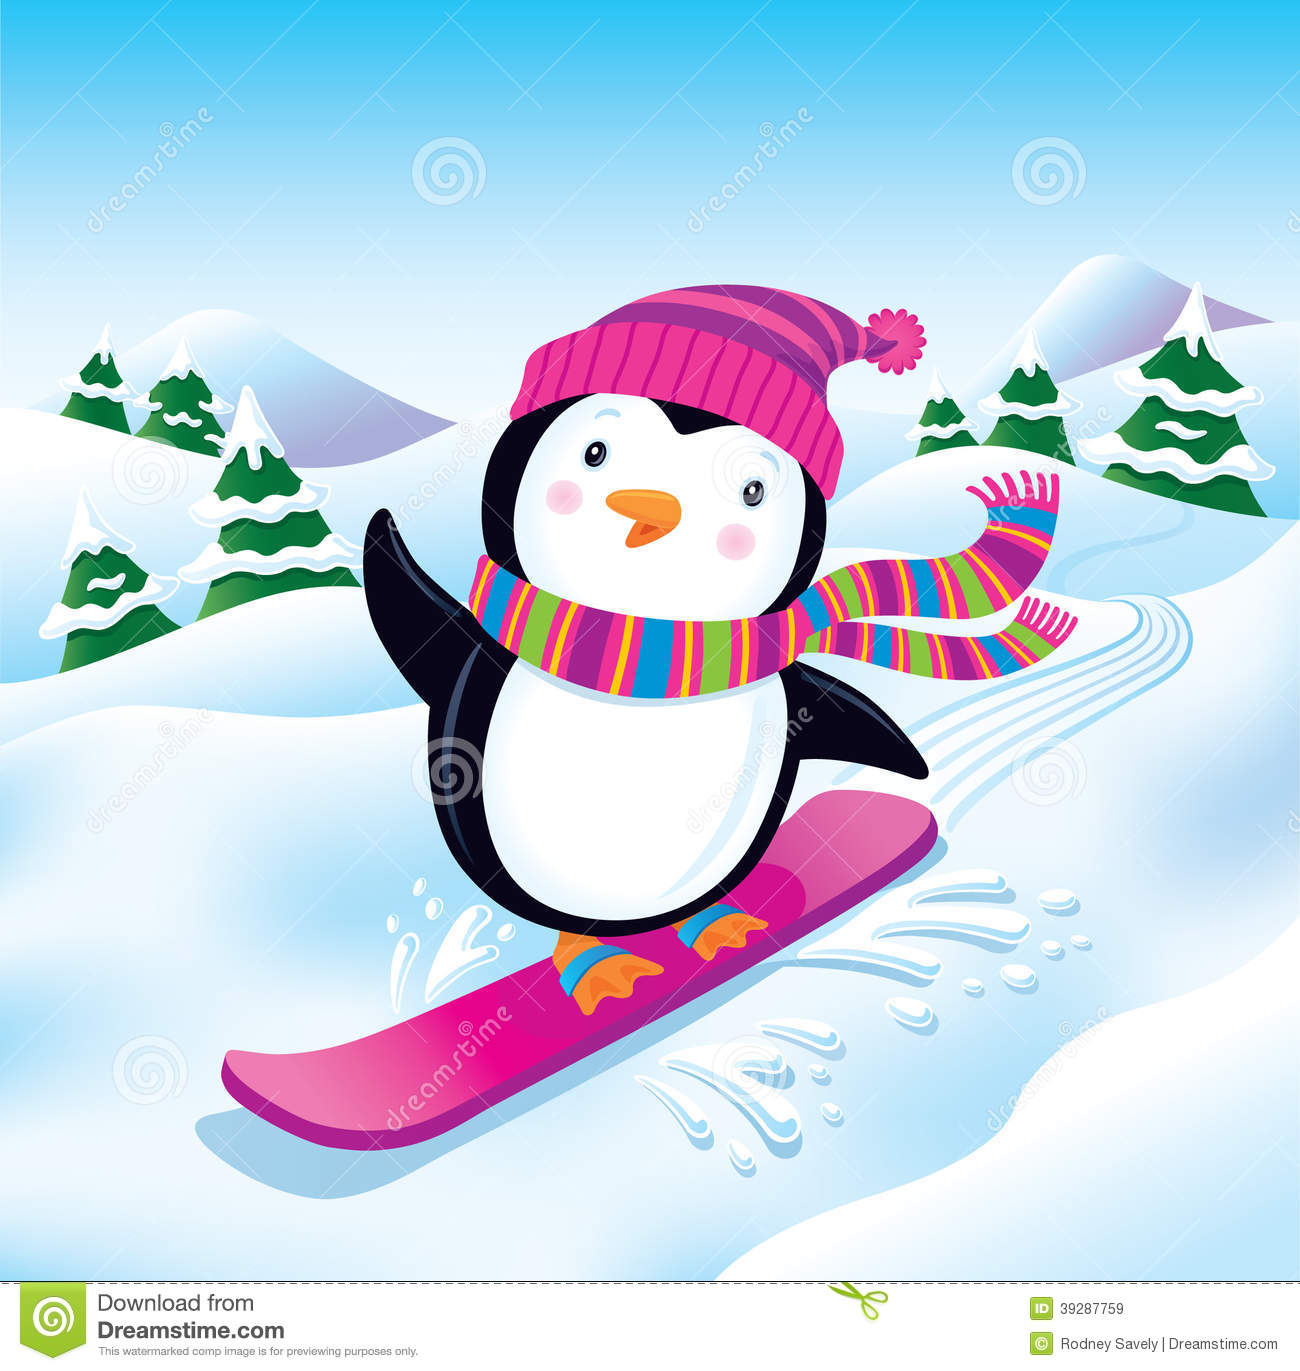 ... wearing a striped knit cap and scarf, snowboarding on a snowy slope